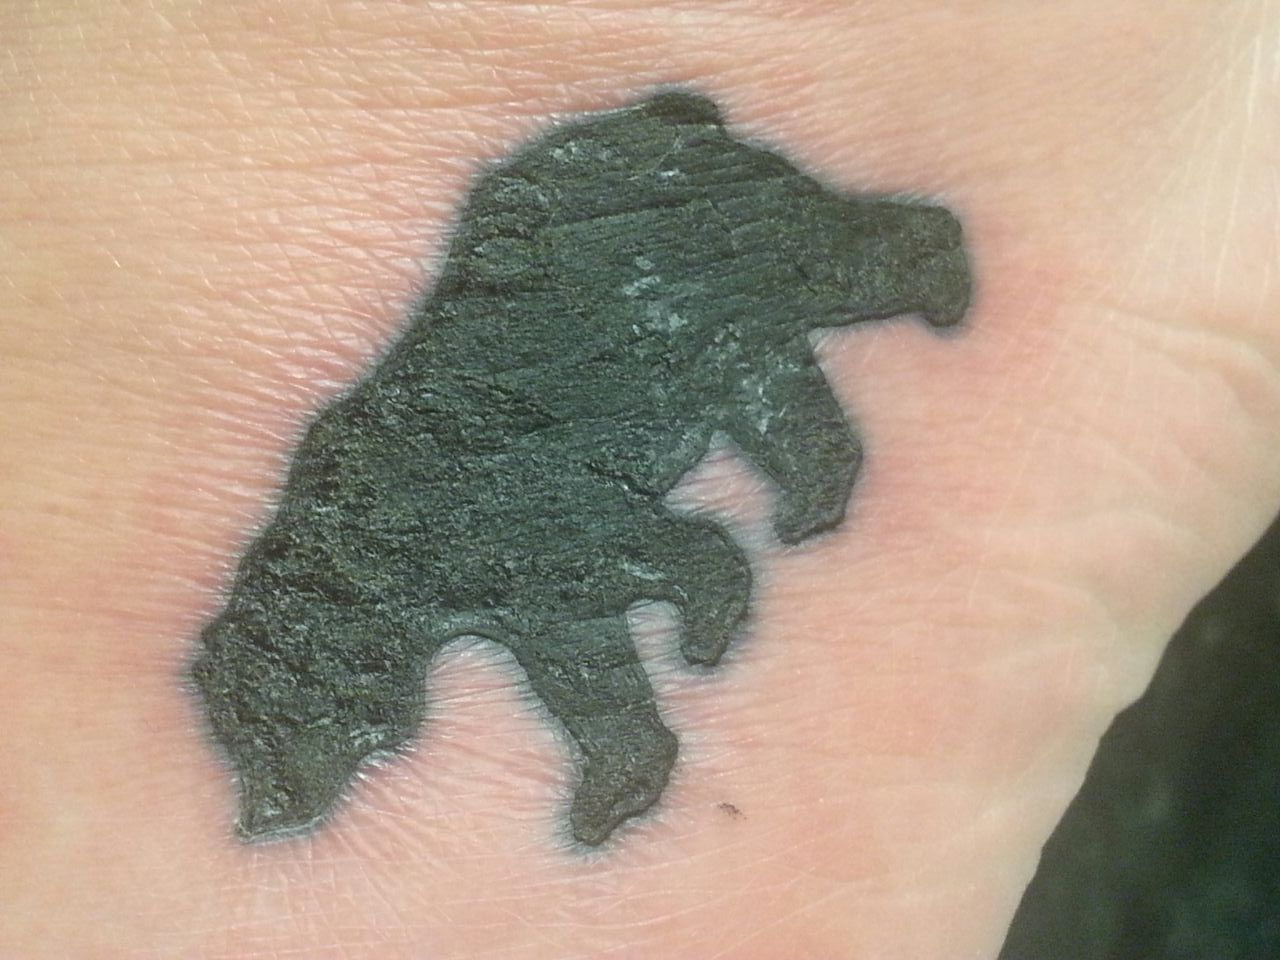 How To Care For A New Tattoo Pugs And Dinosaurs Pugs And Dinosaurs